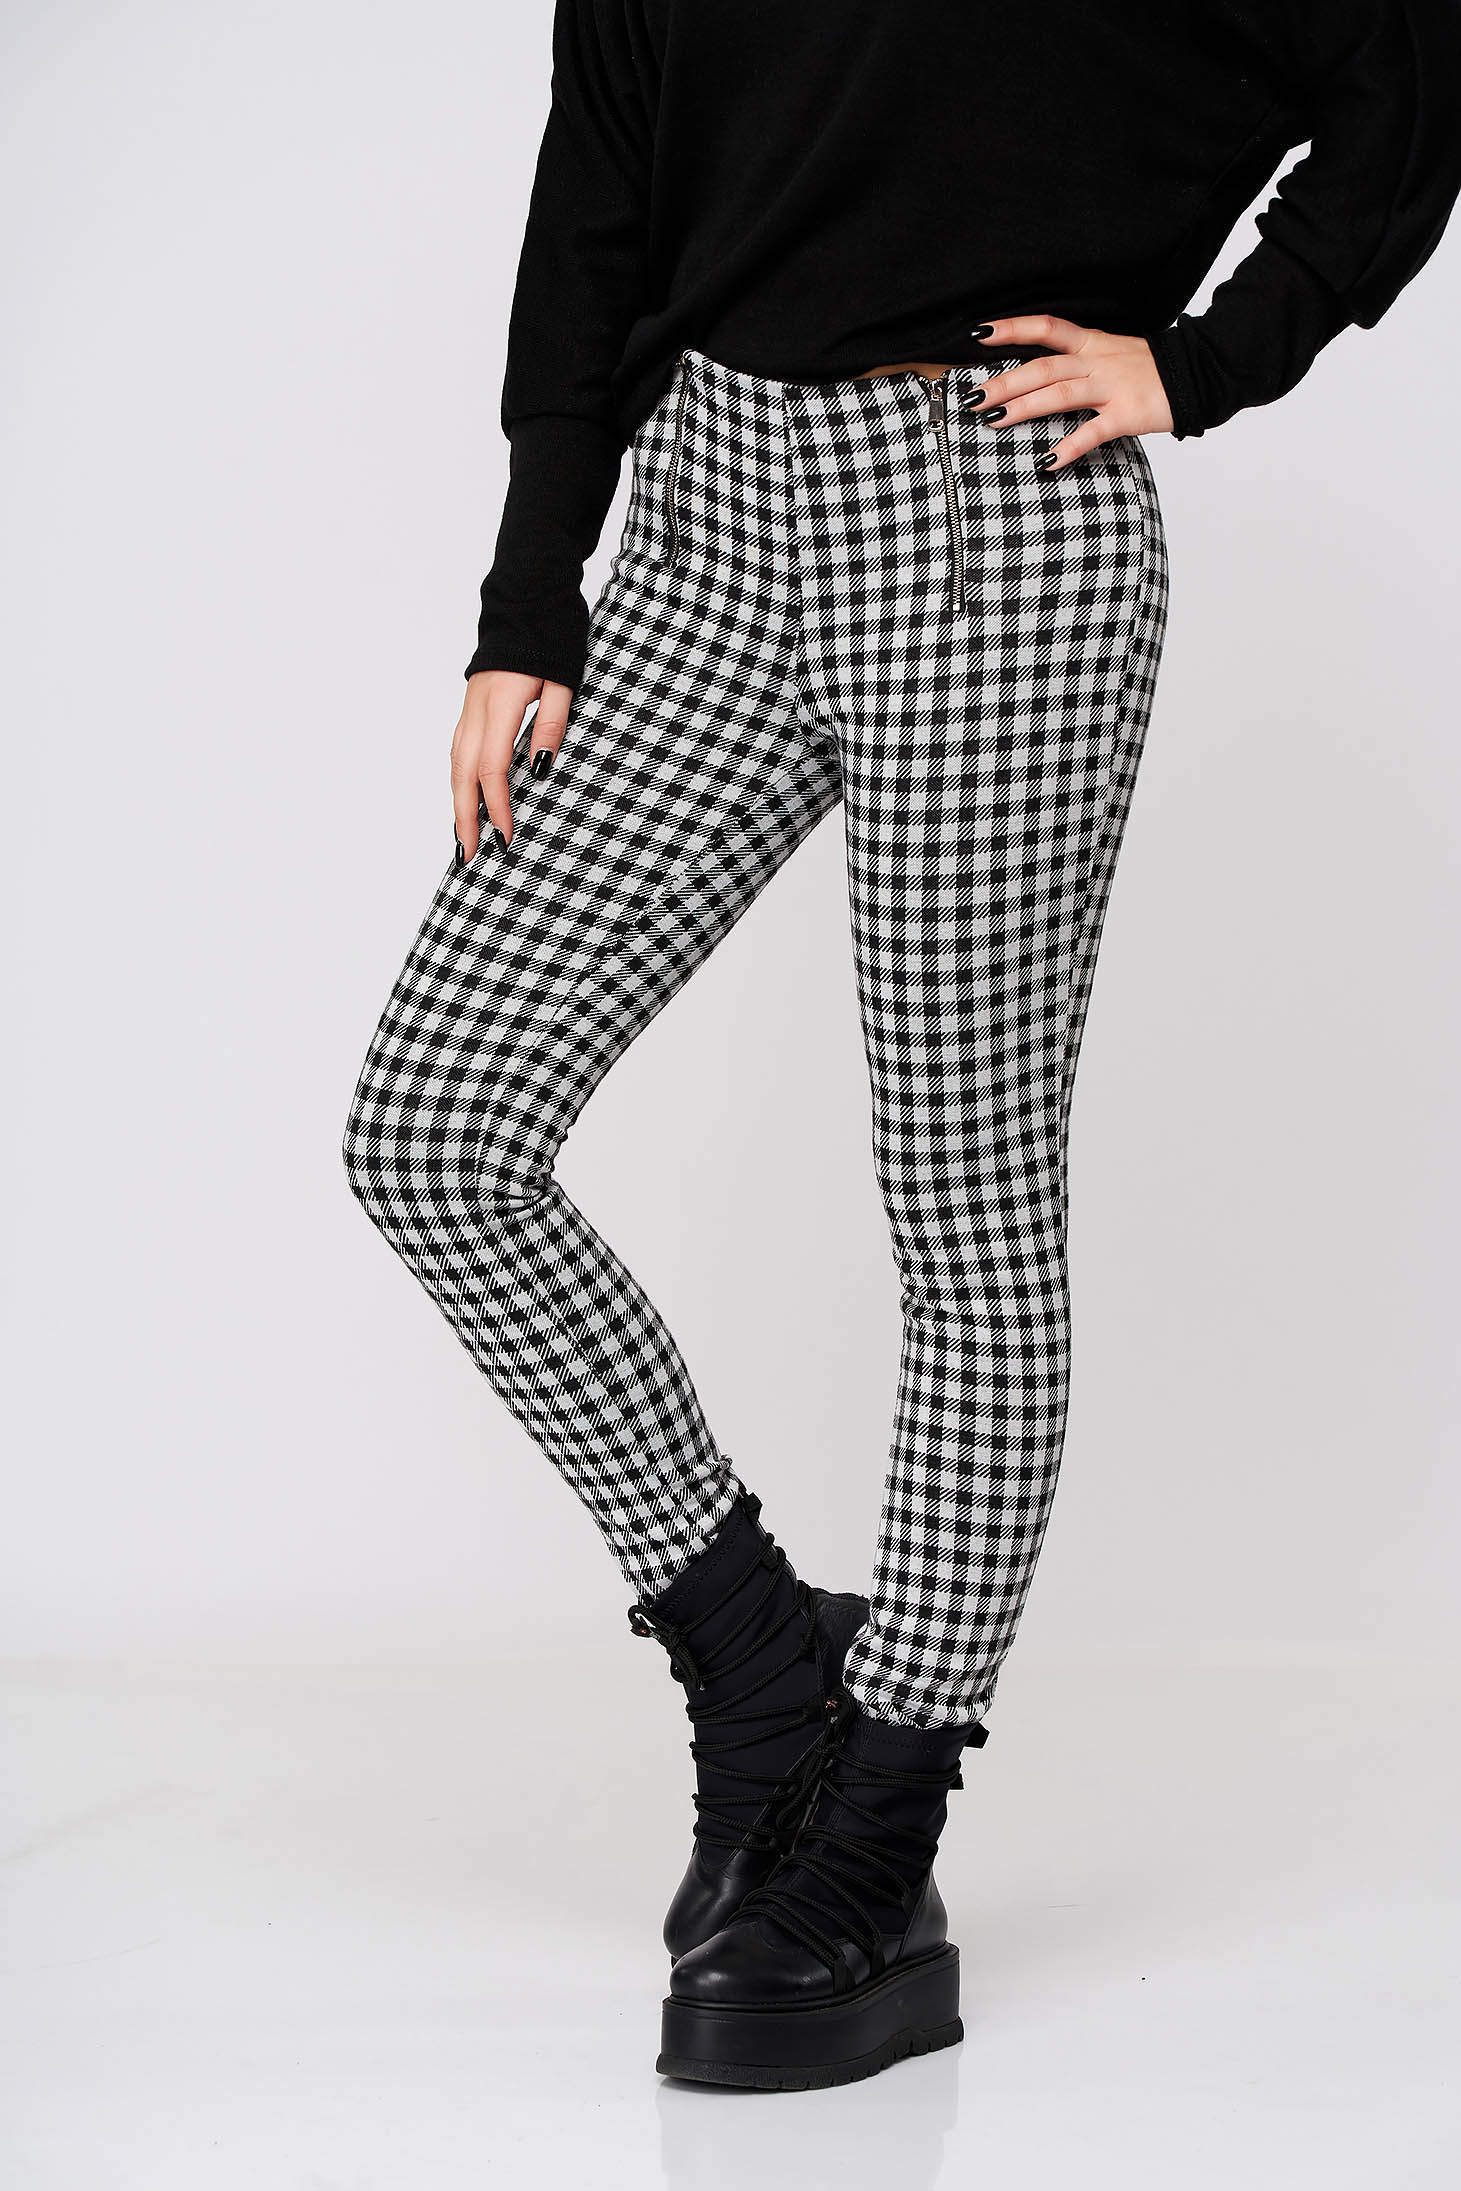 Black trousers casual conical slightly elastic fabric with medium waist